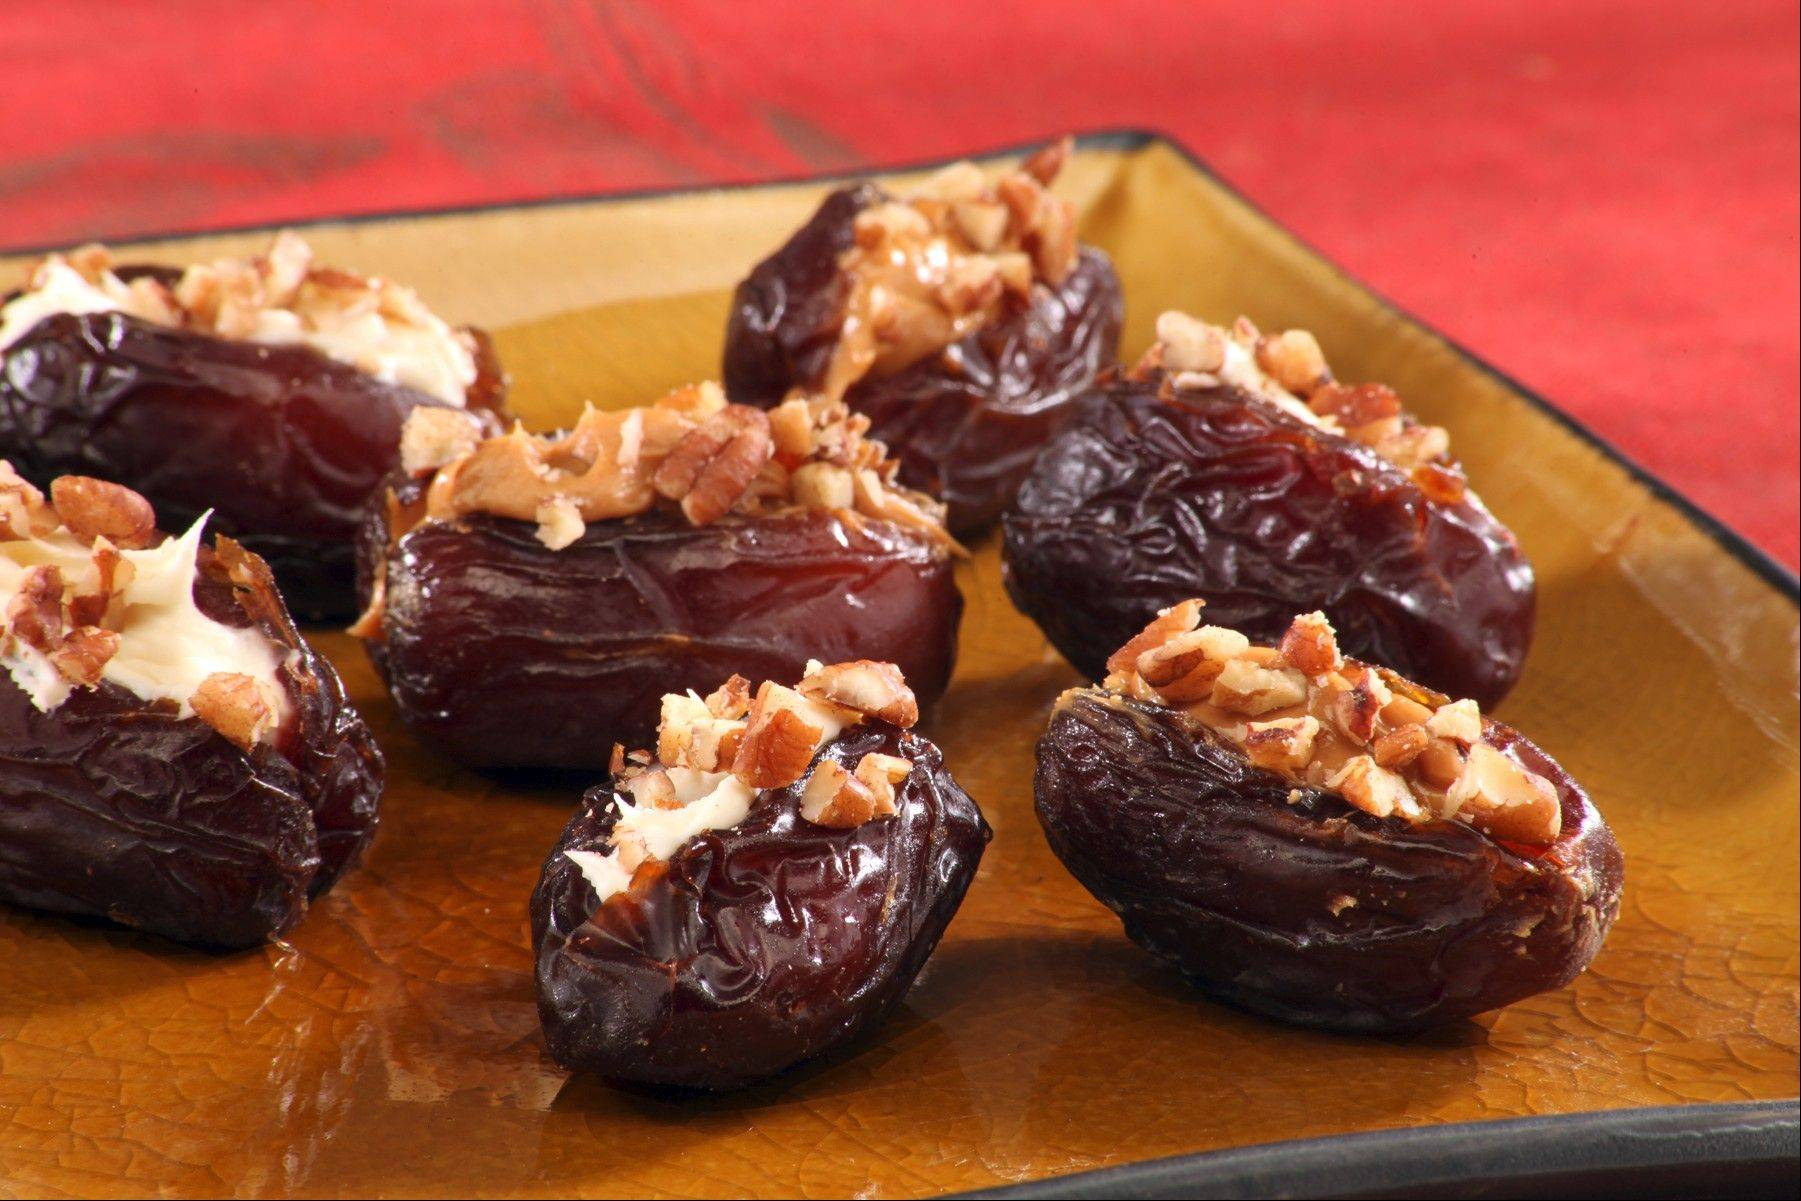 Cream cheese and peanut butter bring new life to stuffed date appetizers.